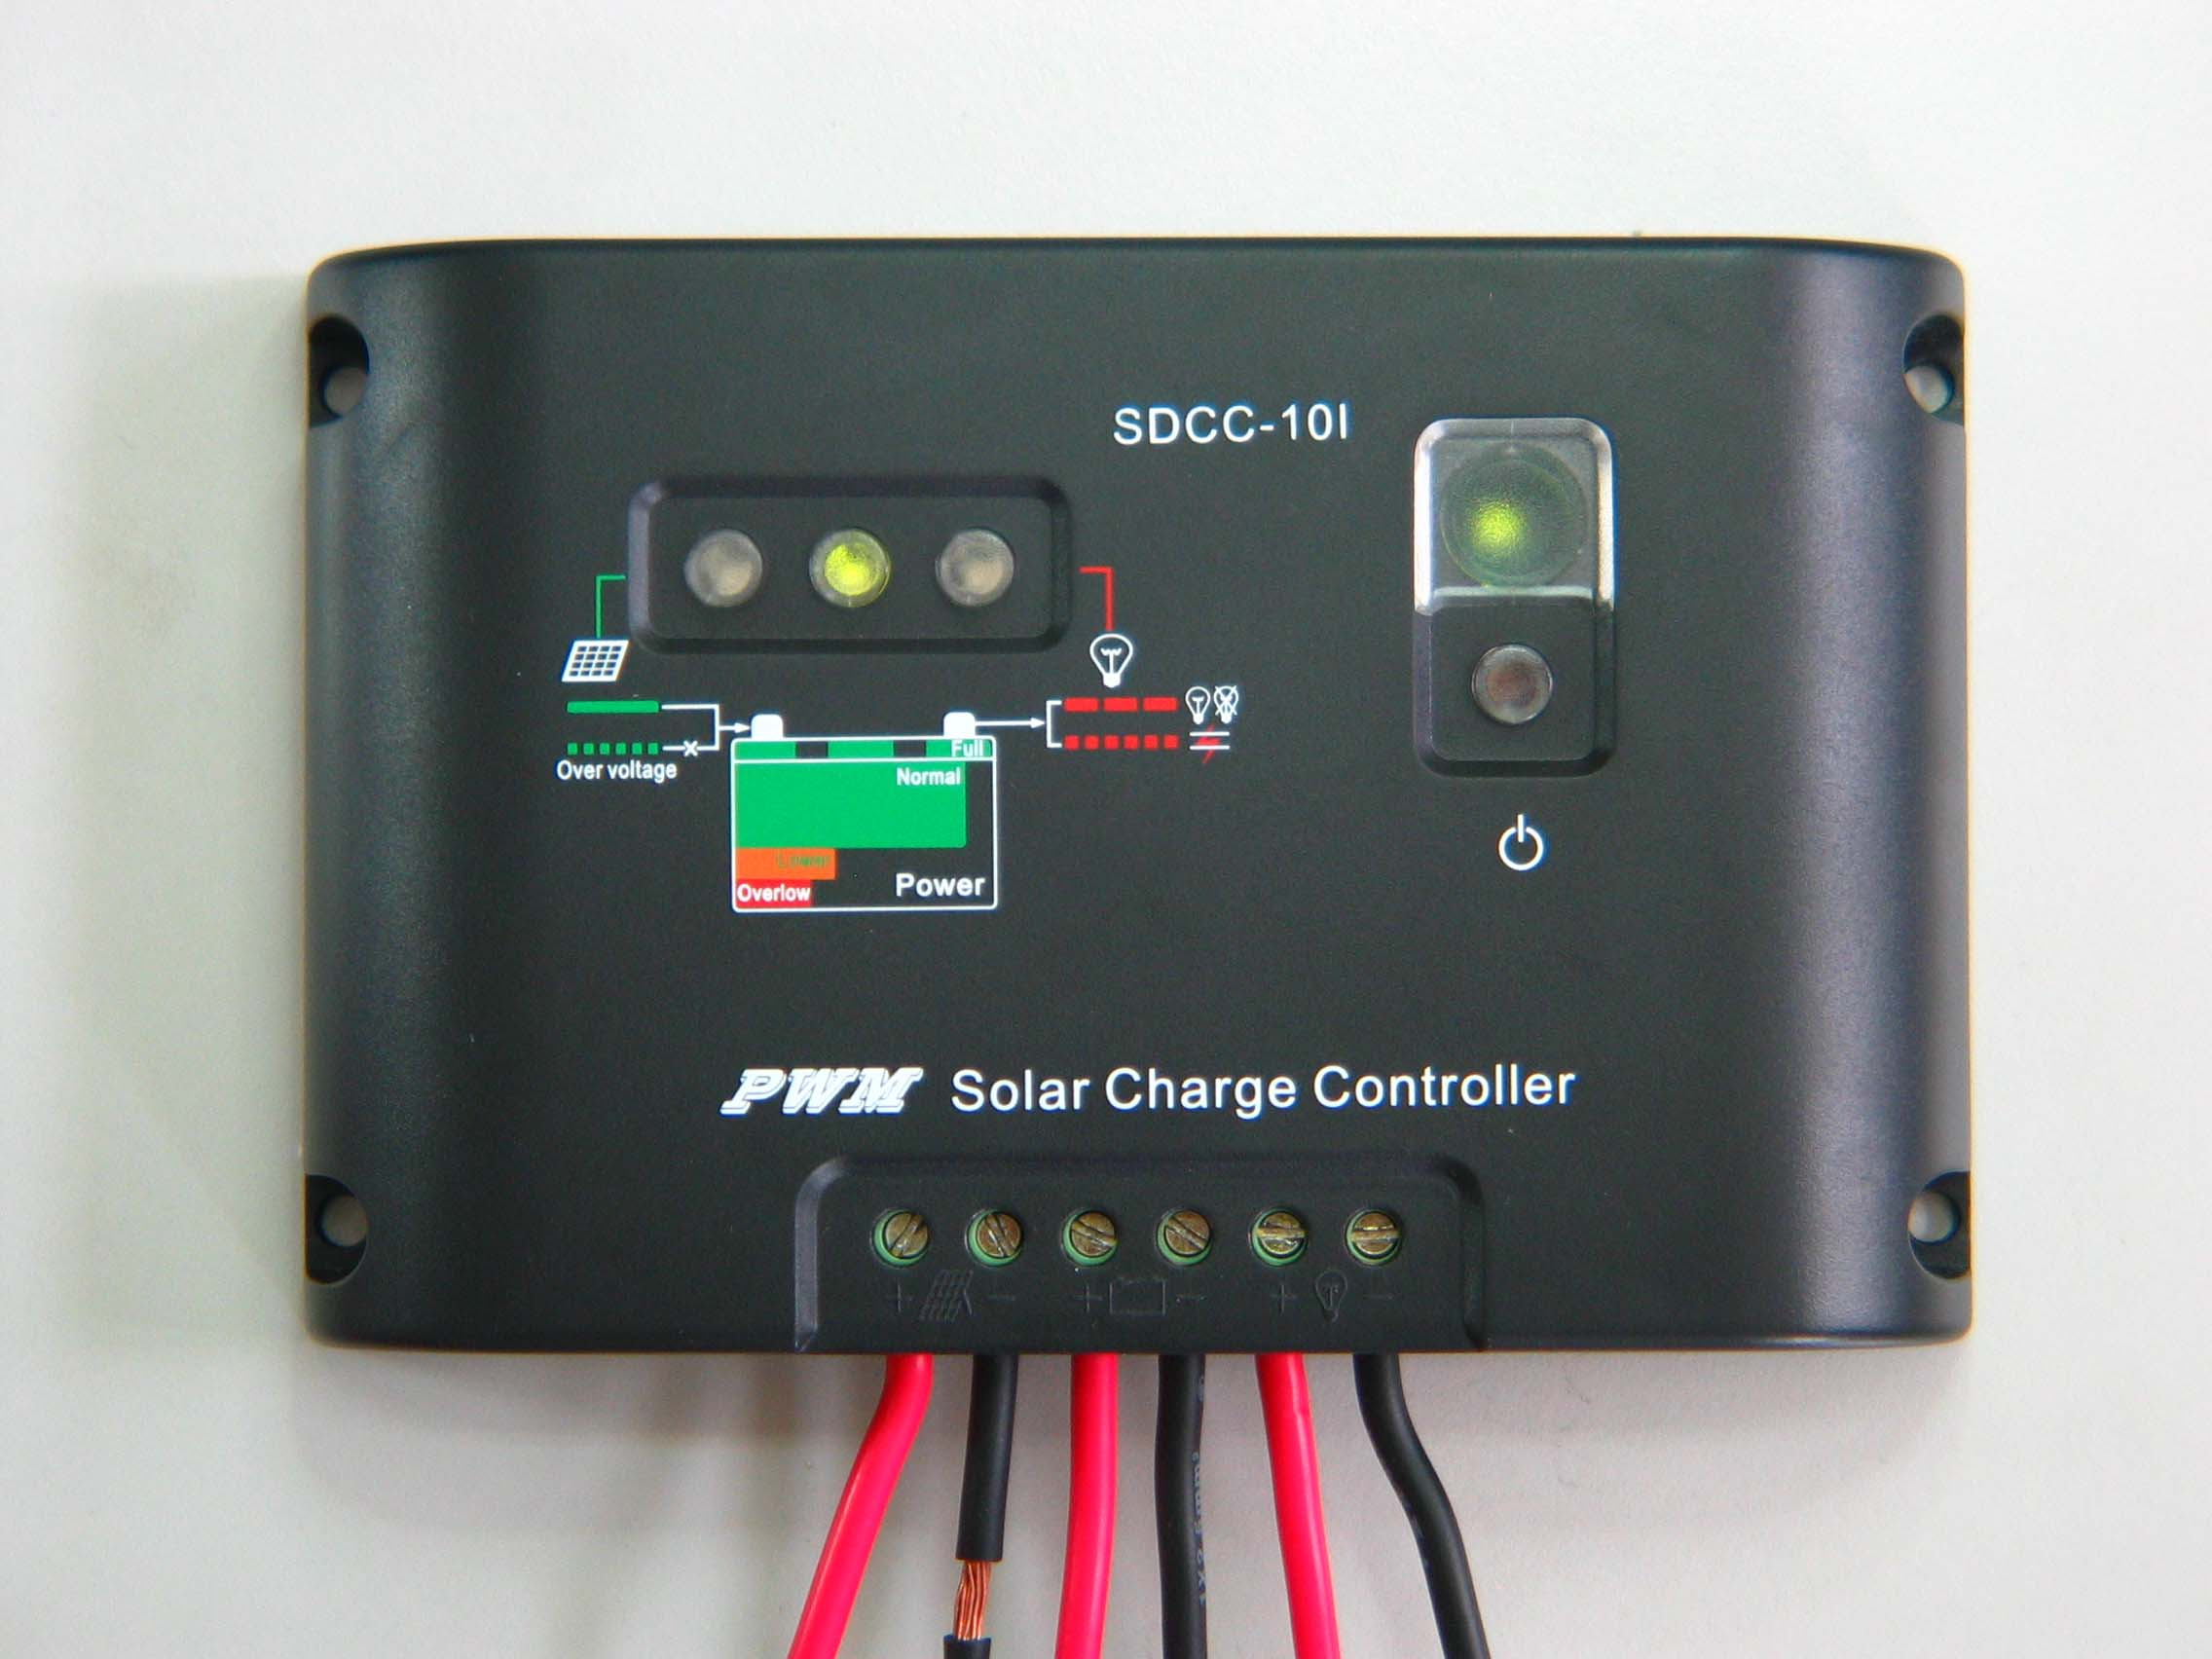 Solar Charge Controller (SDCC) | solarproducts tradekey com